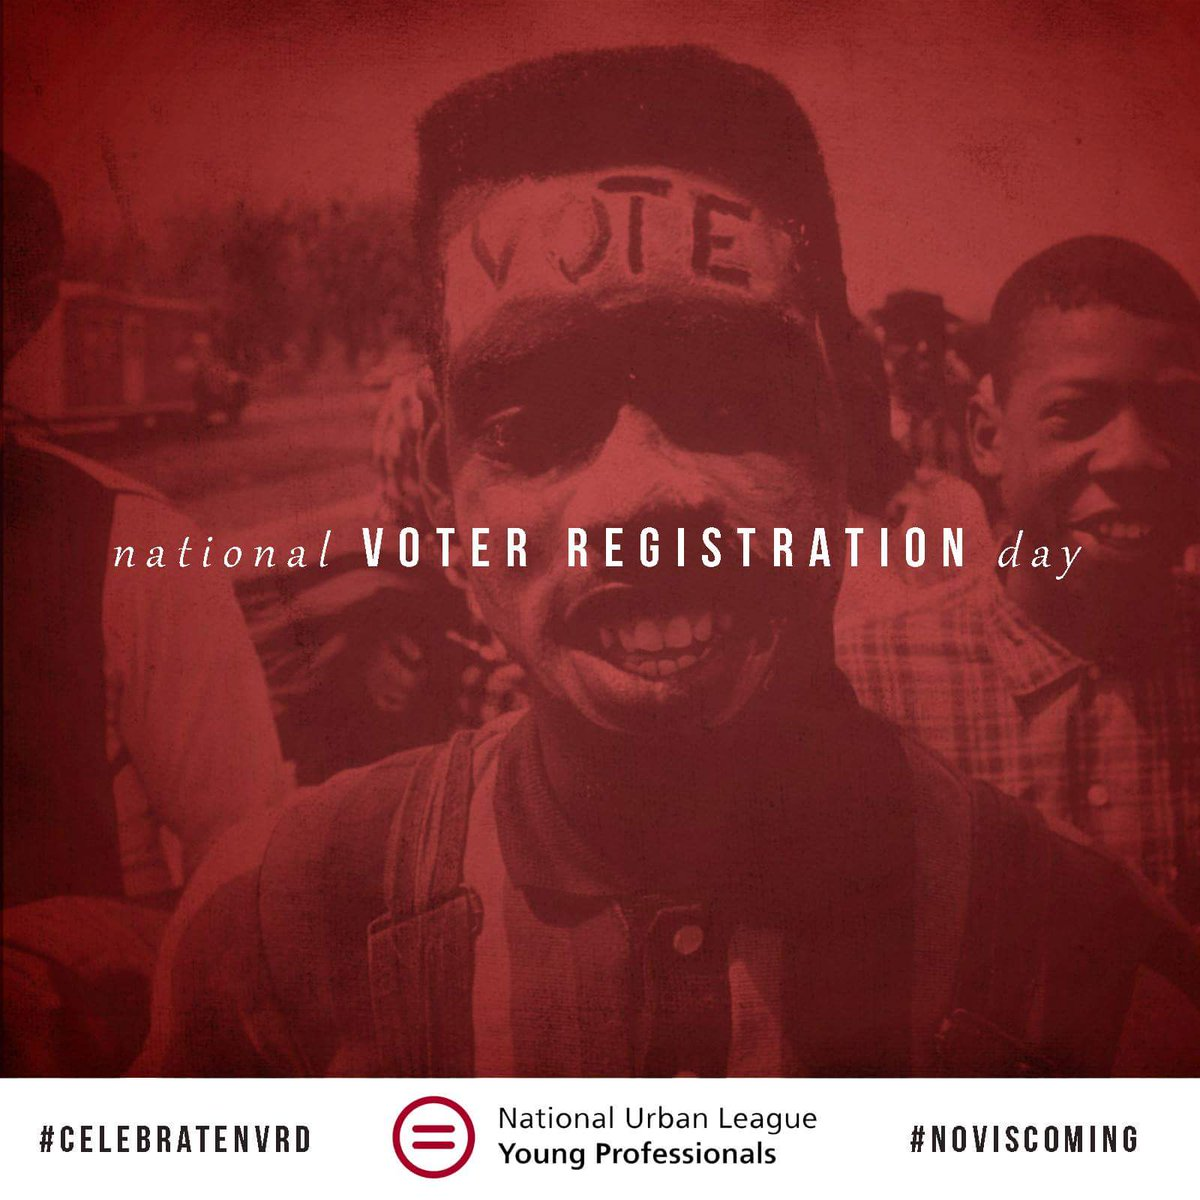 #NovIsComing 9/27 is Nat'l Voter Registration Day. Use your rights! Register & promote voting! #WeMustVote https://t.co/0mW4viJ6RO